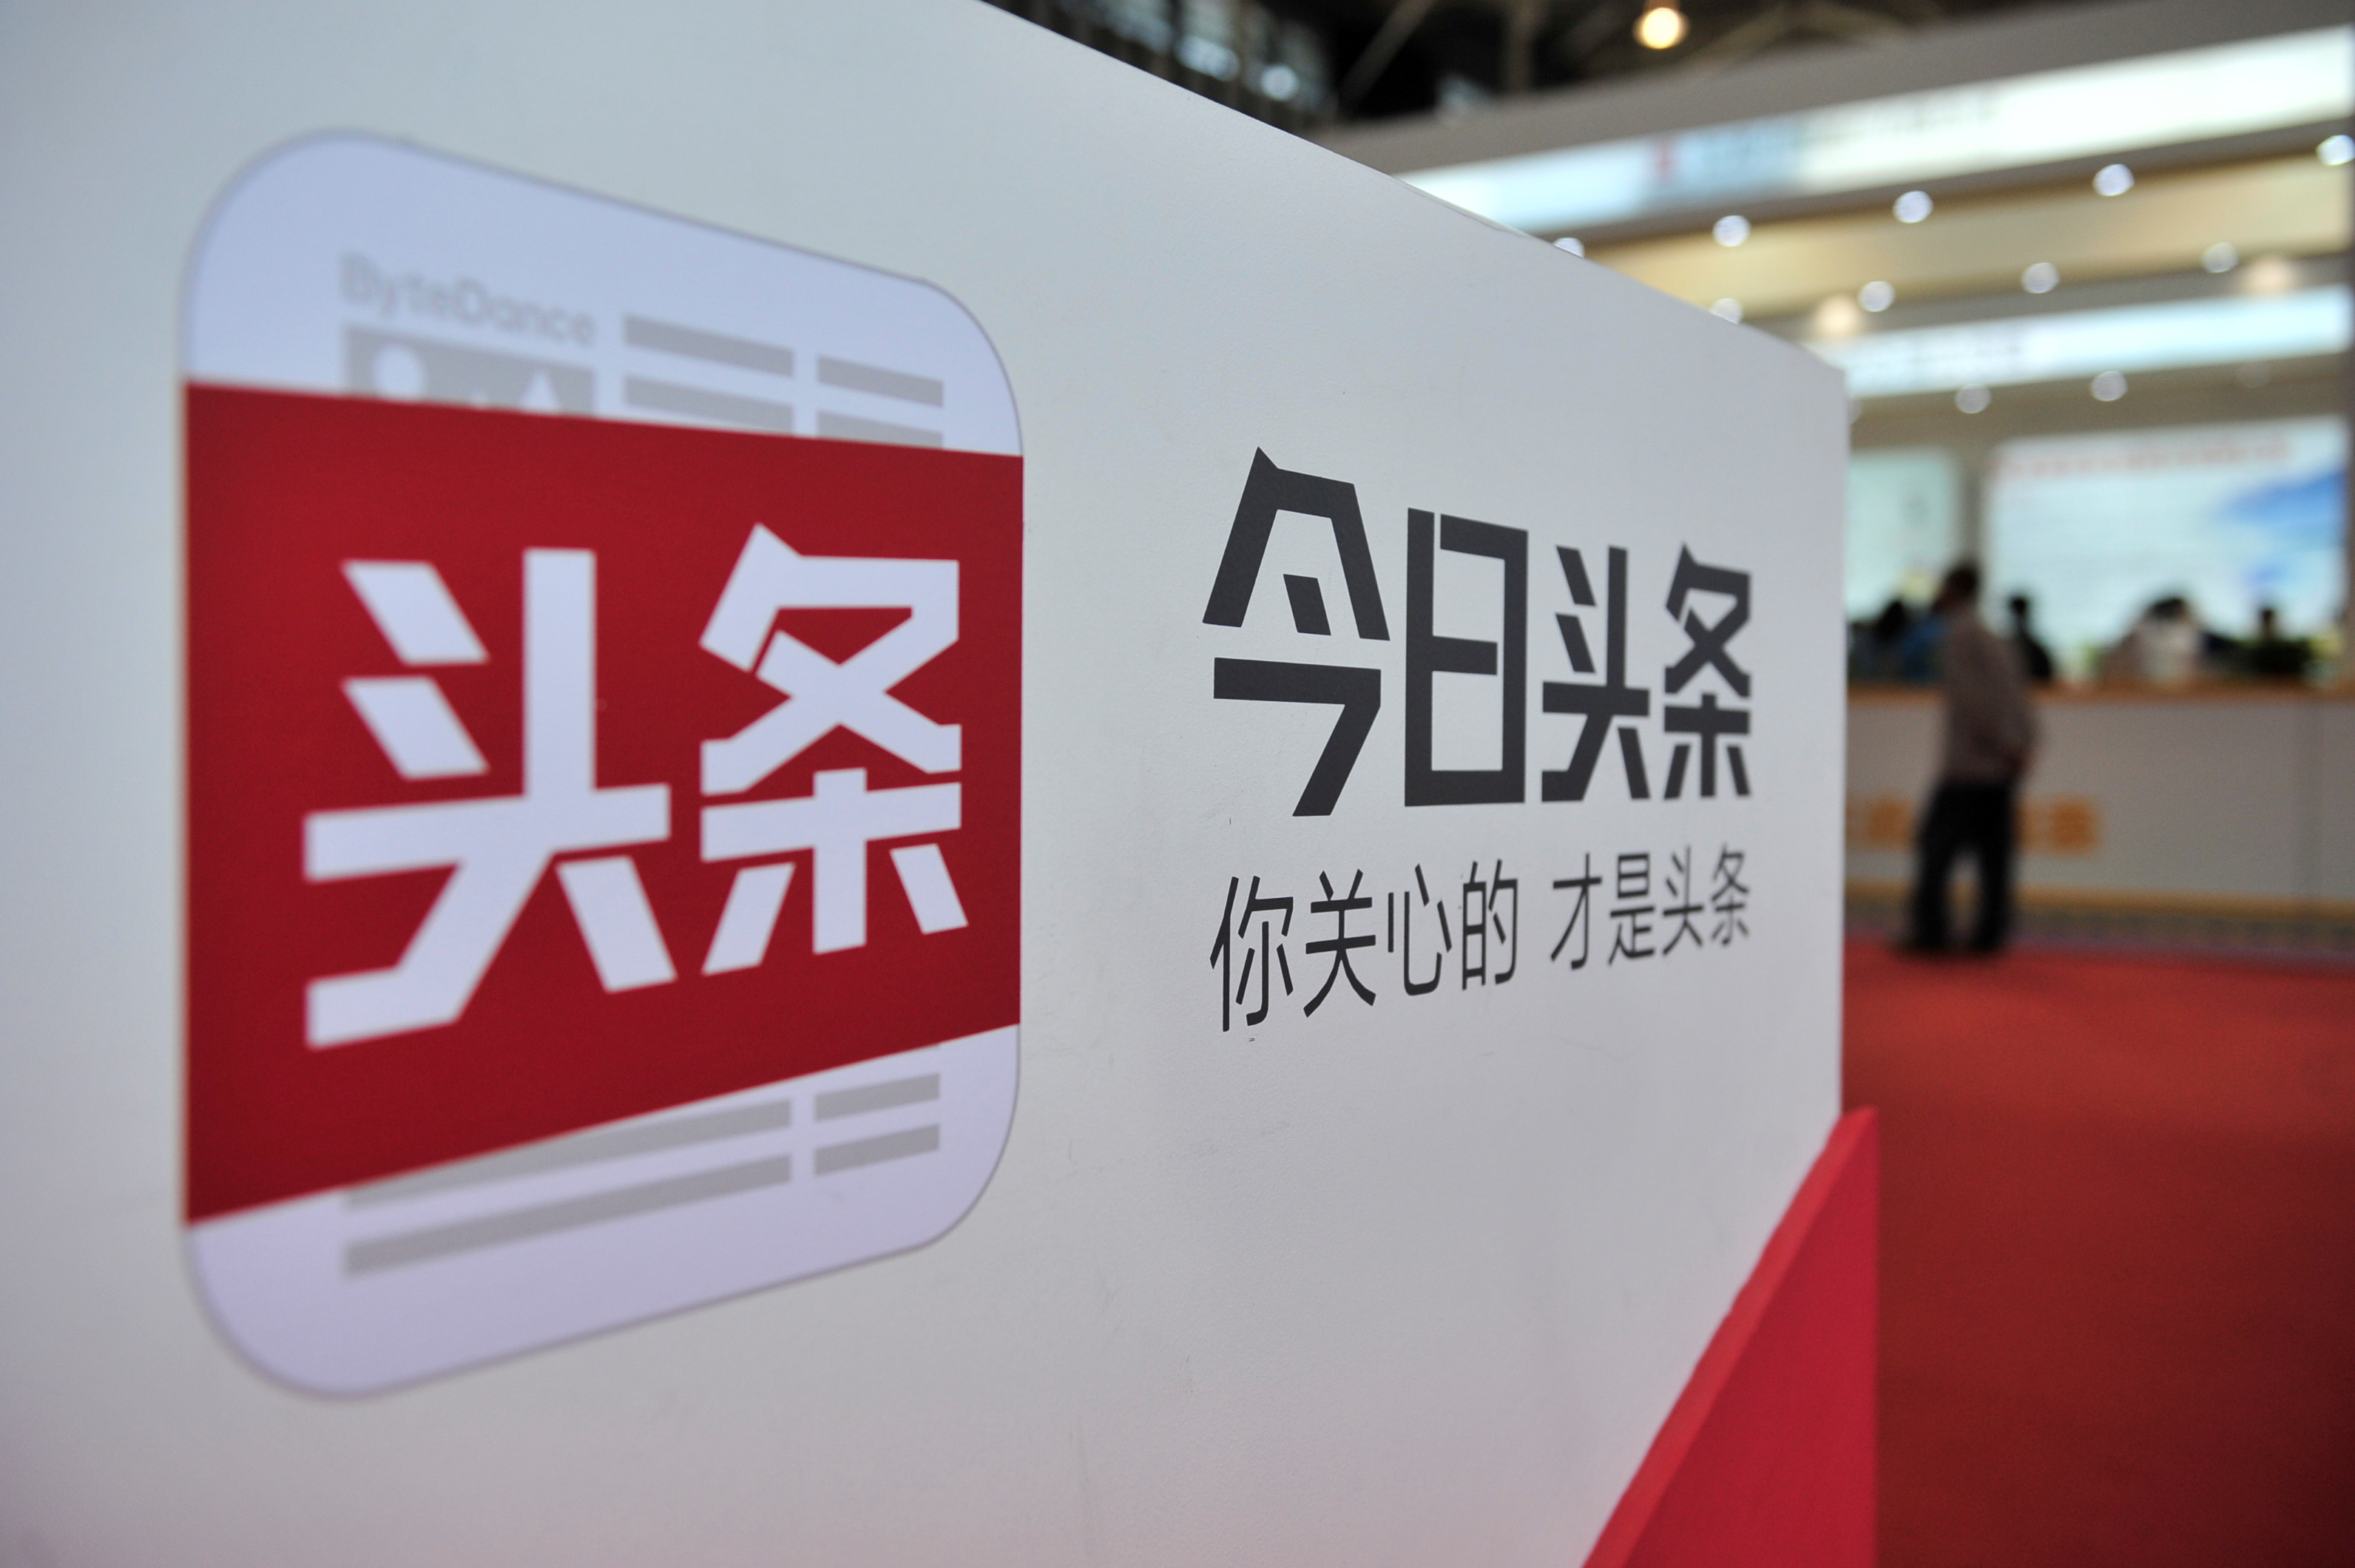 A logo of Chinese news aggregator Toutiao is pictured in Nanjing, Jiangsu province, China July 4, 2015. Picture taken July 4, 2015.